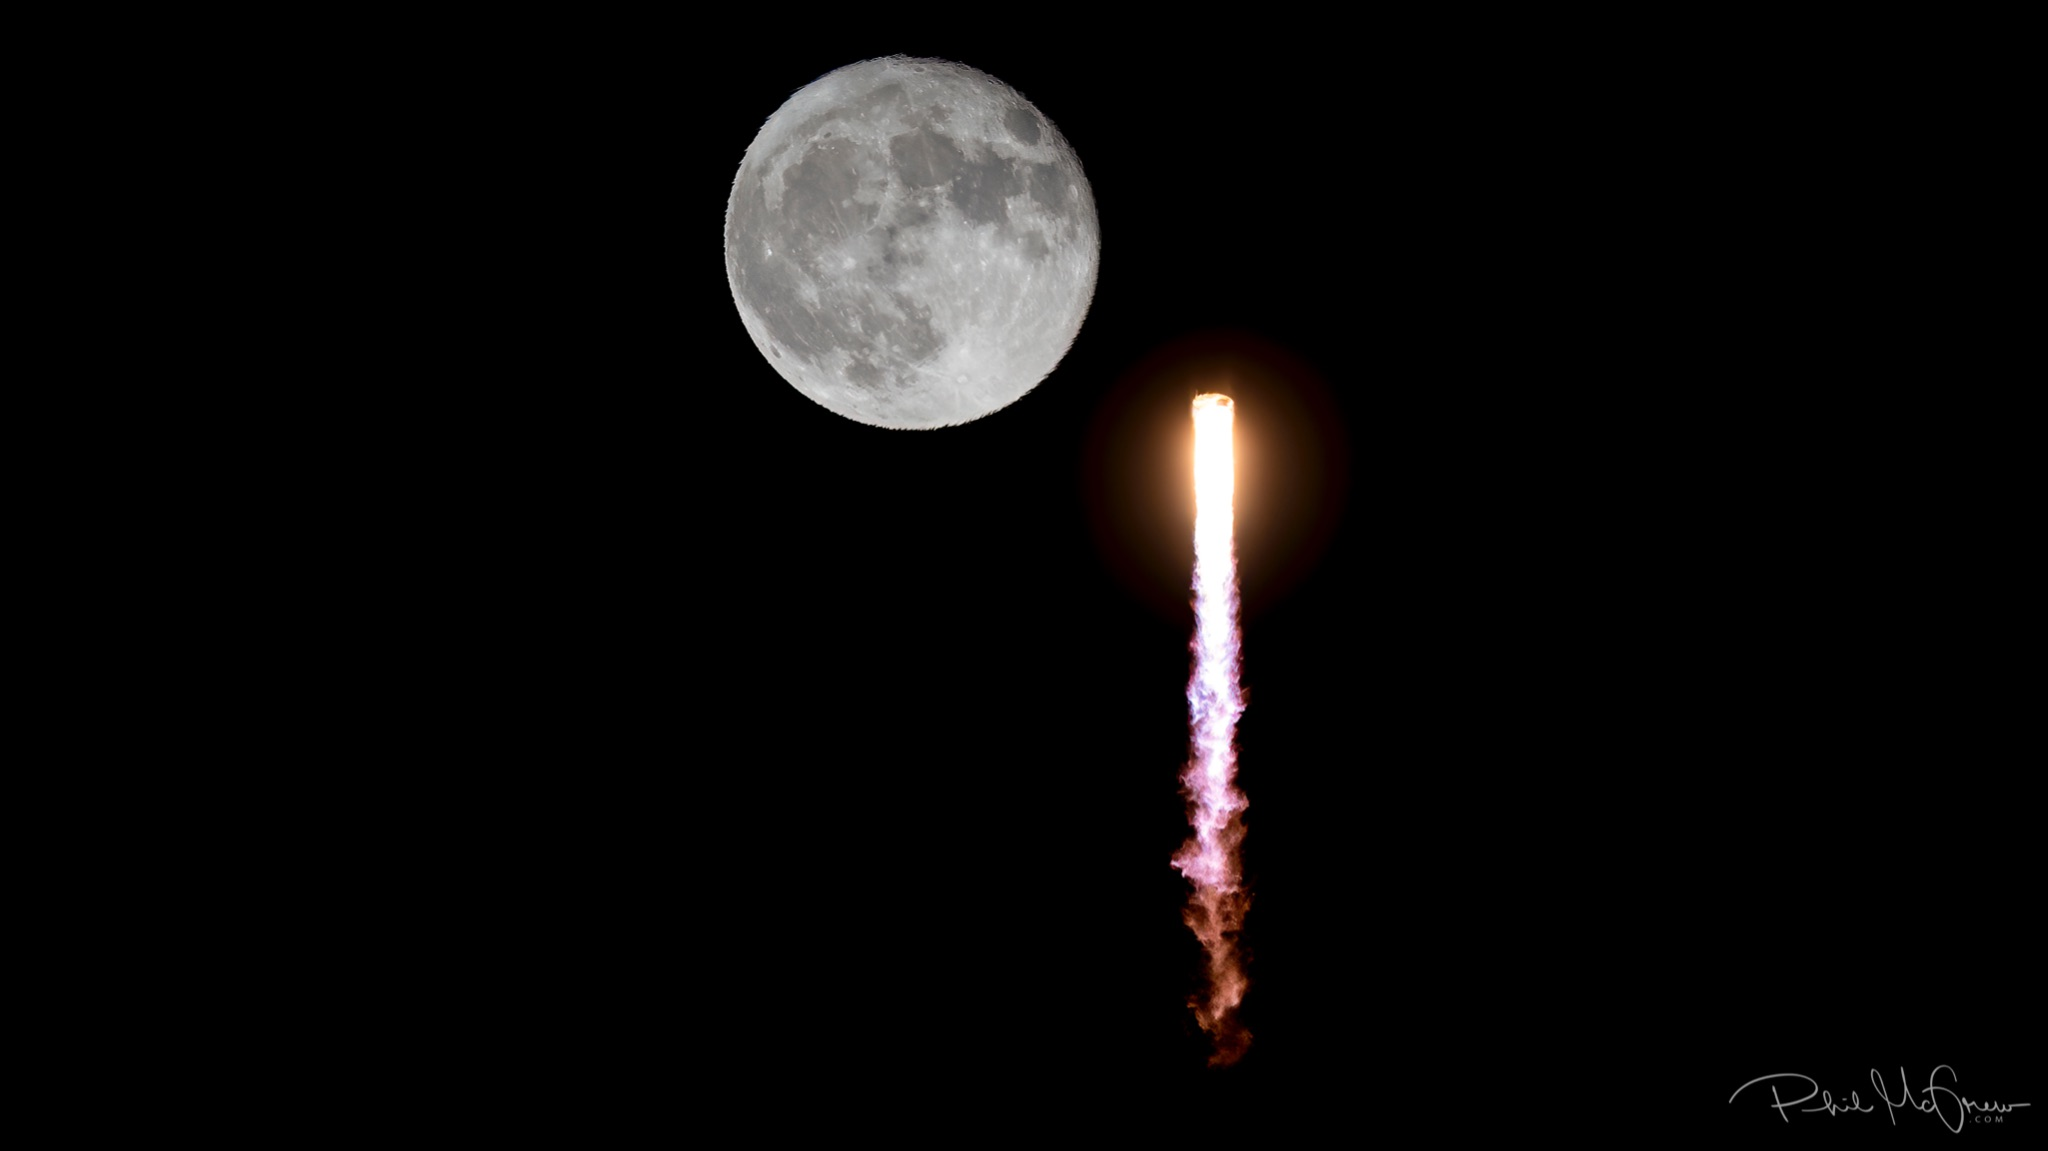 Nearly full moon with bright vertical streak of rocket exhaust near it.